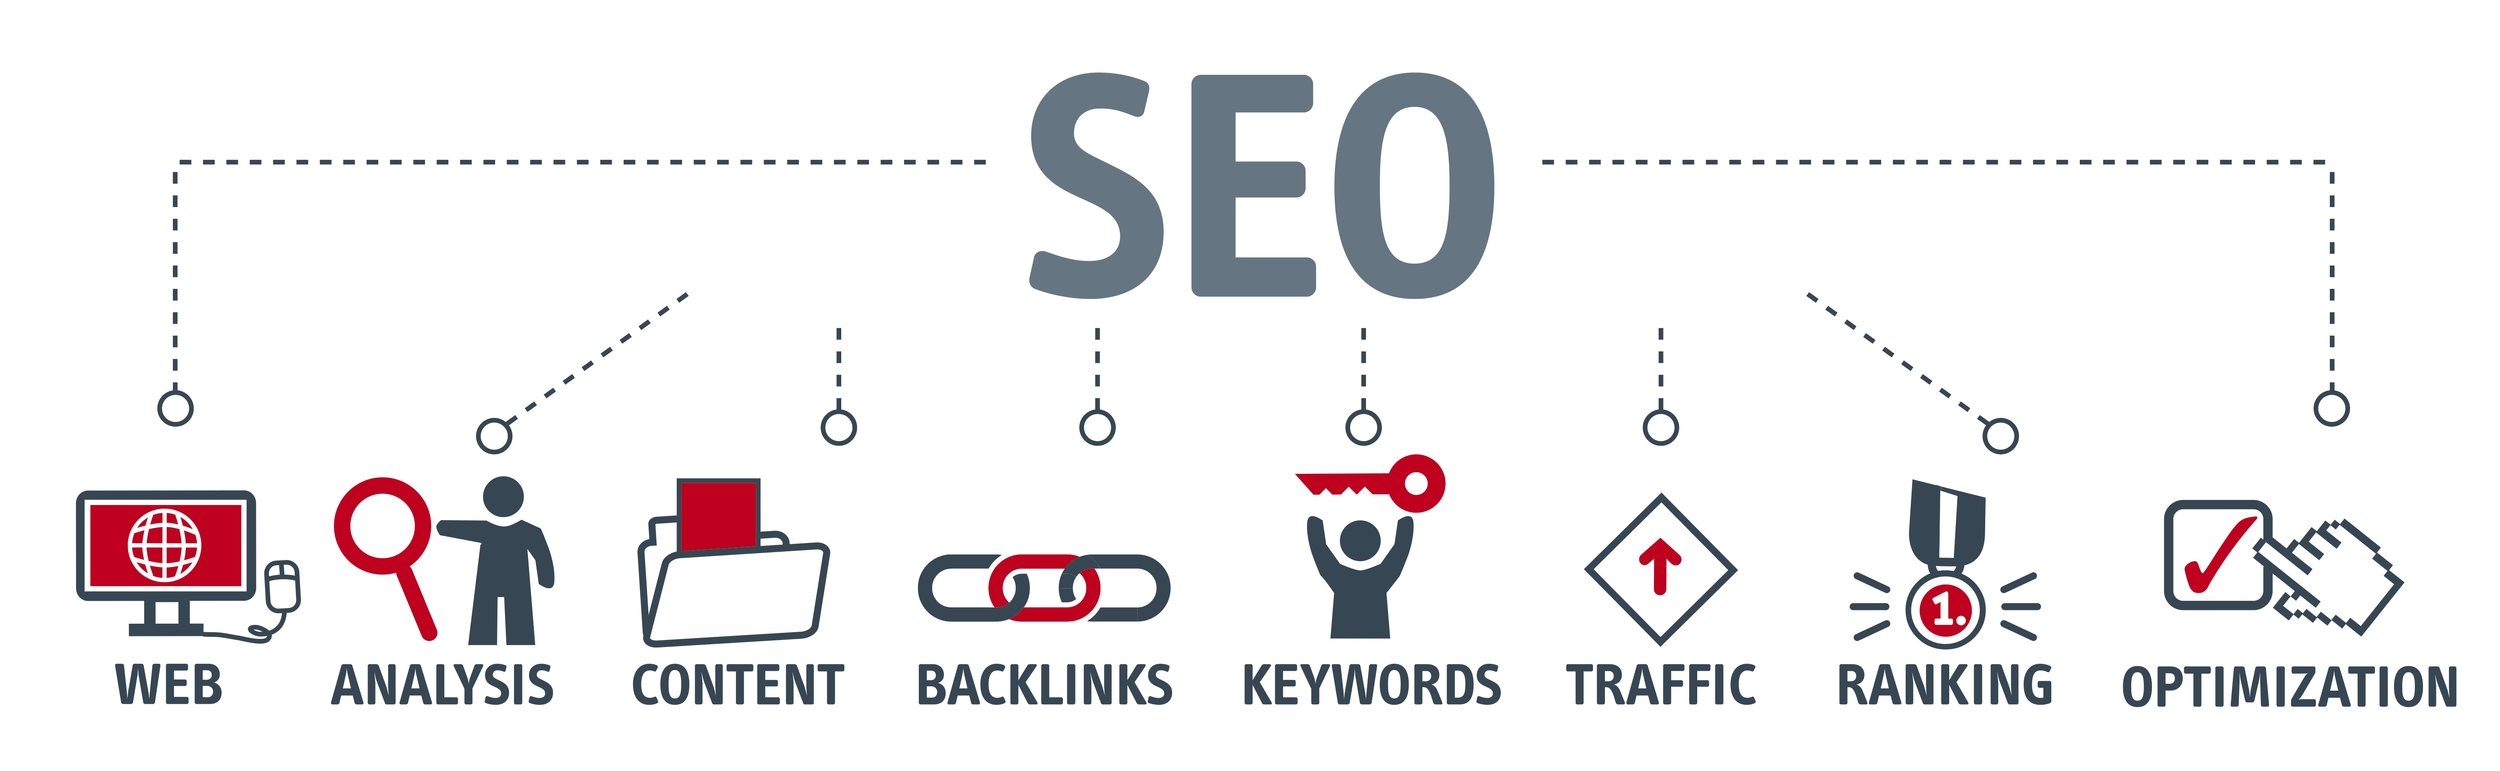 What Are The Benefits You Can Get From SEO Agency London?